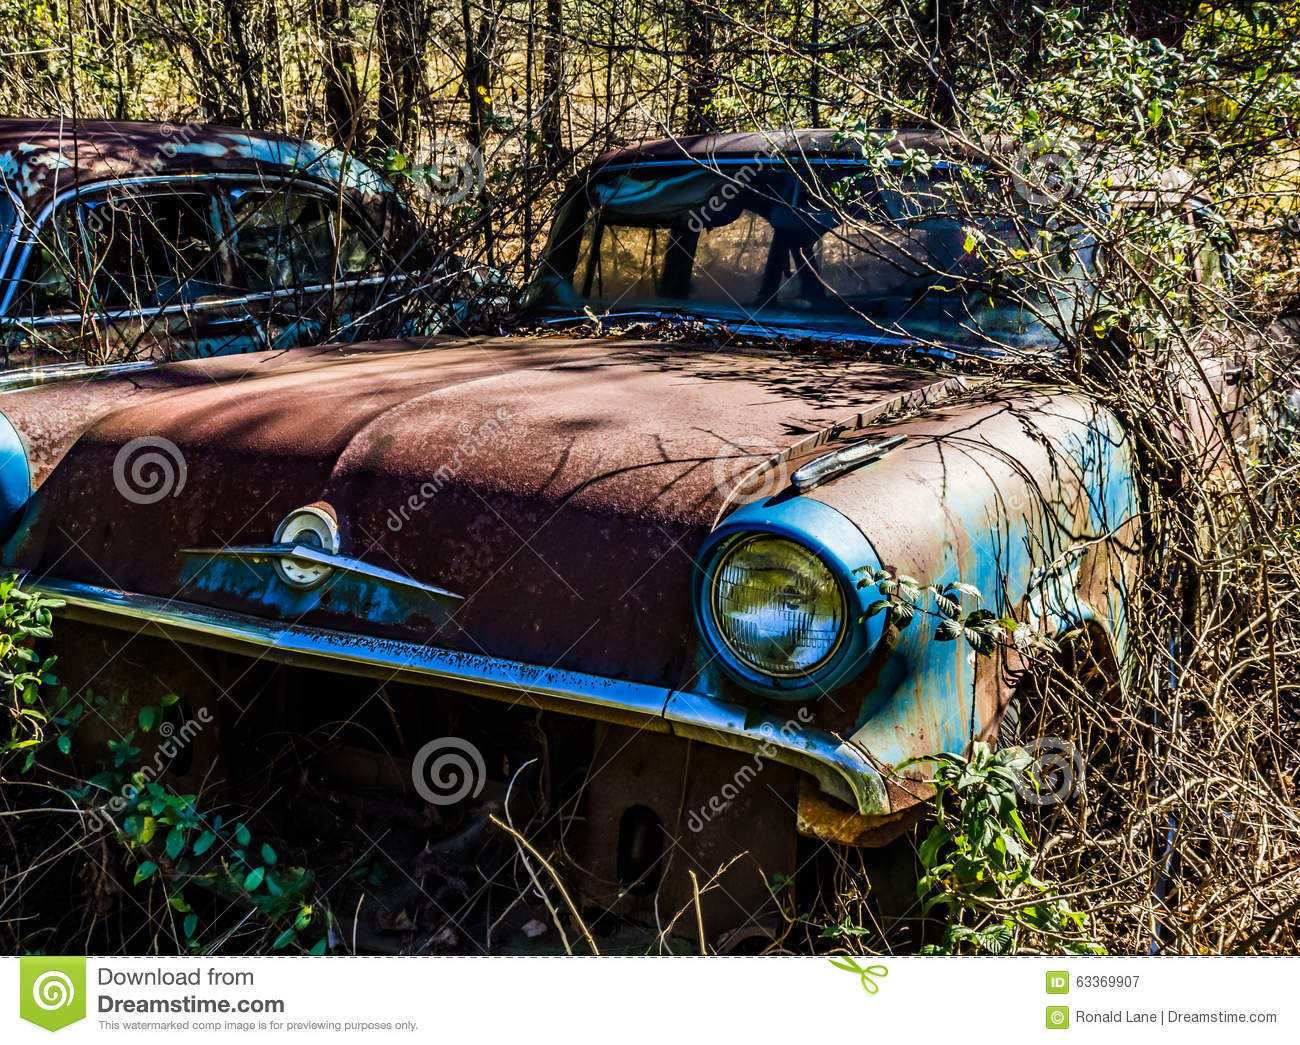 Rusty, Old, Junked Car In The Woods Stock Image - Image of abandoned ...